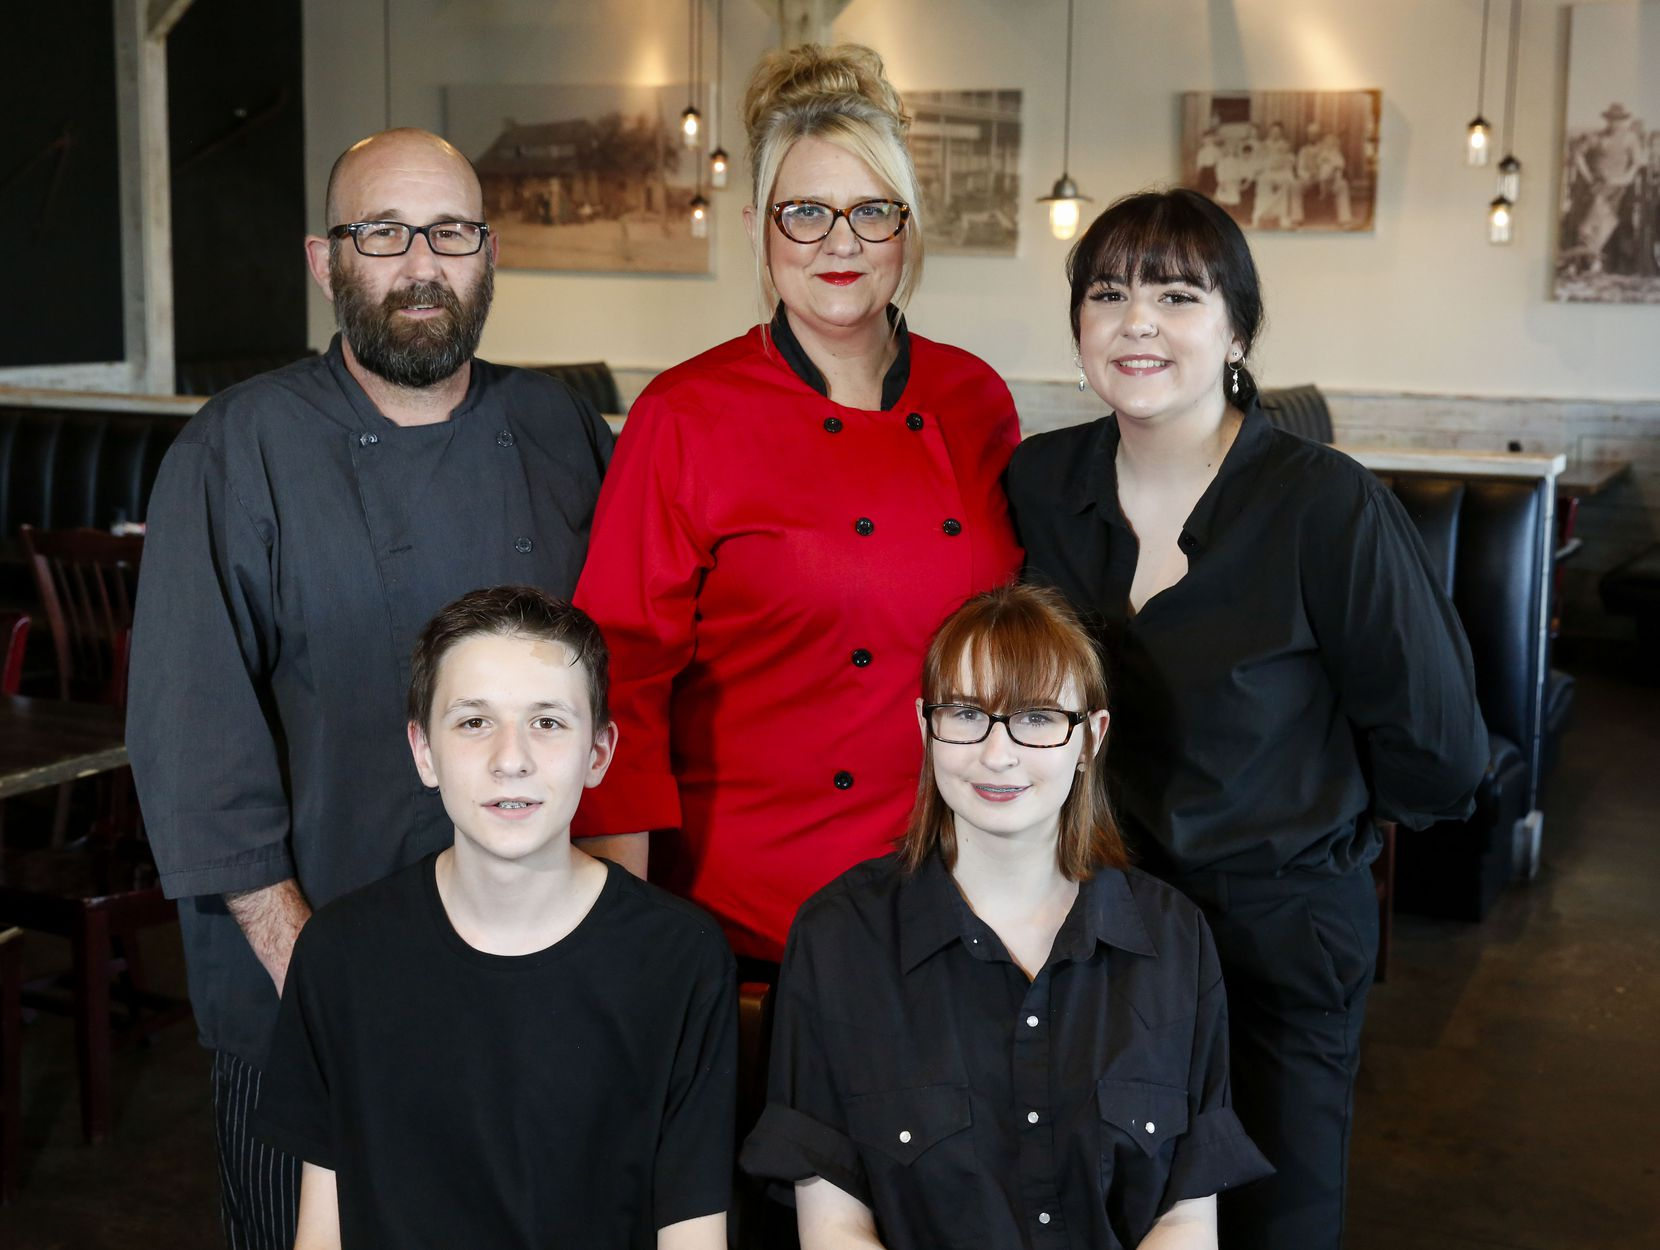 Owner and Executive Chef Phil Doyal, back row left, his wife owner and Pastry Chef Christina Doyal, back row center, their daughter Chloe Doyal, back row right, their son Keagan Doyal, front row left and daughter Peyton Doyal at the Barn Light Eatery in Frisco, Texas Thursday September 26, 2019.(Brian Elledge/The Dallas Morning News)